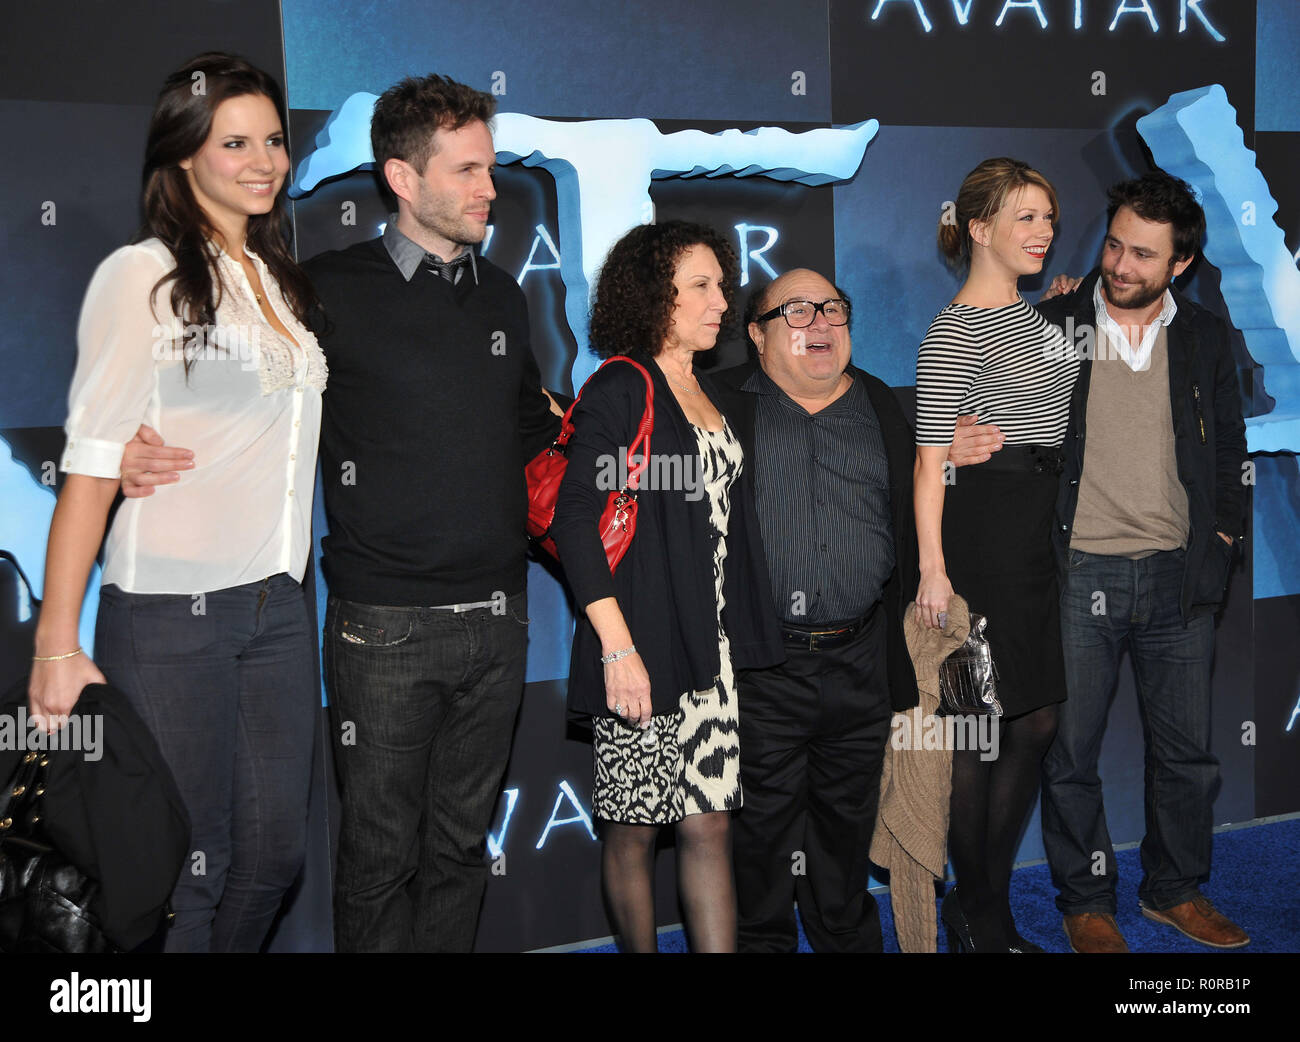 Dany DeVito _ Rhea Perlman _cast of It's always Sunny in Philadelphia _83  - Avatar Los Angeles Premiere at the Chinese Theatre In Los Angeles.        - Stock Image